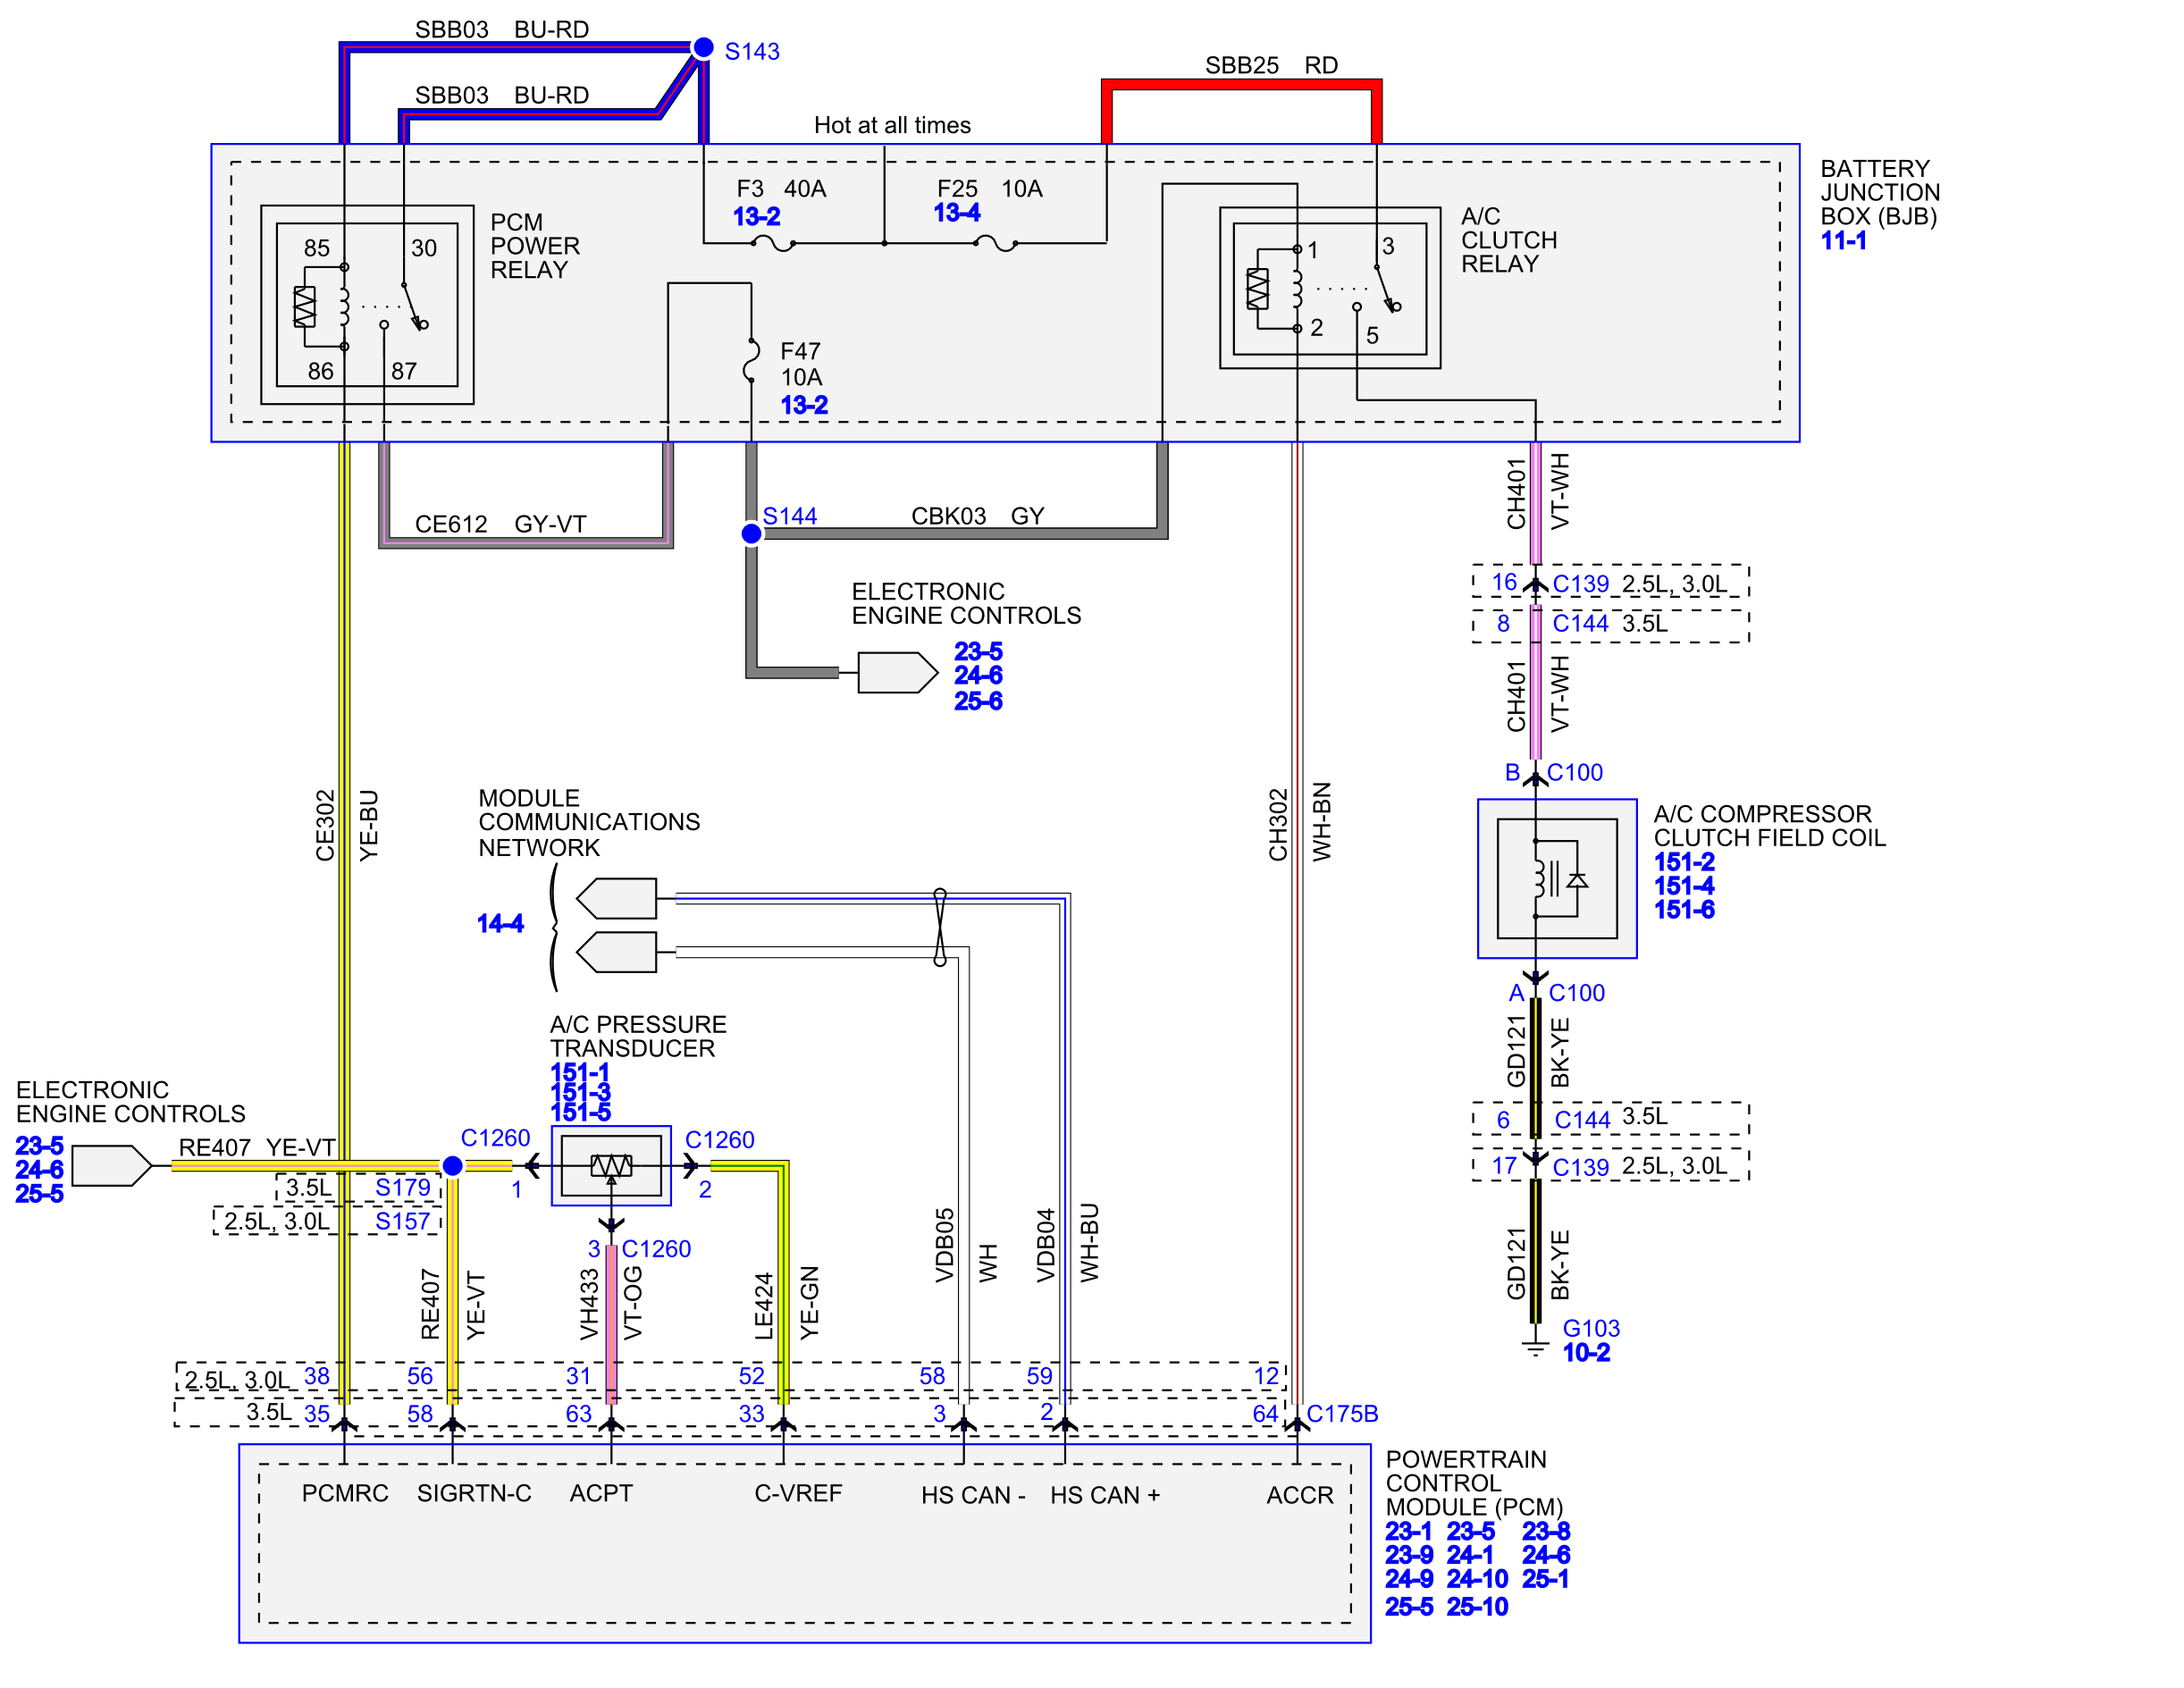 Ford Fusion Ac Wiring Diagram Wiring Diagram Smell Useful A Smell Useful A Lastanzadeltempo It